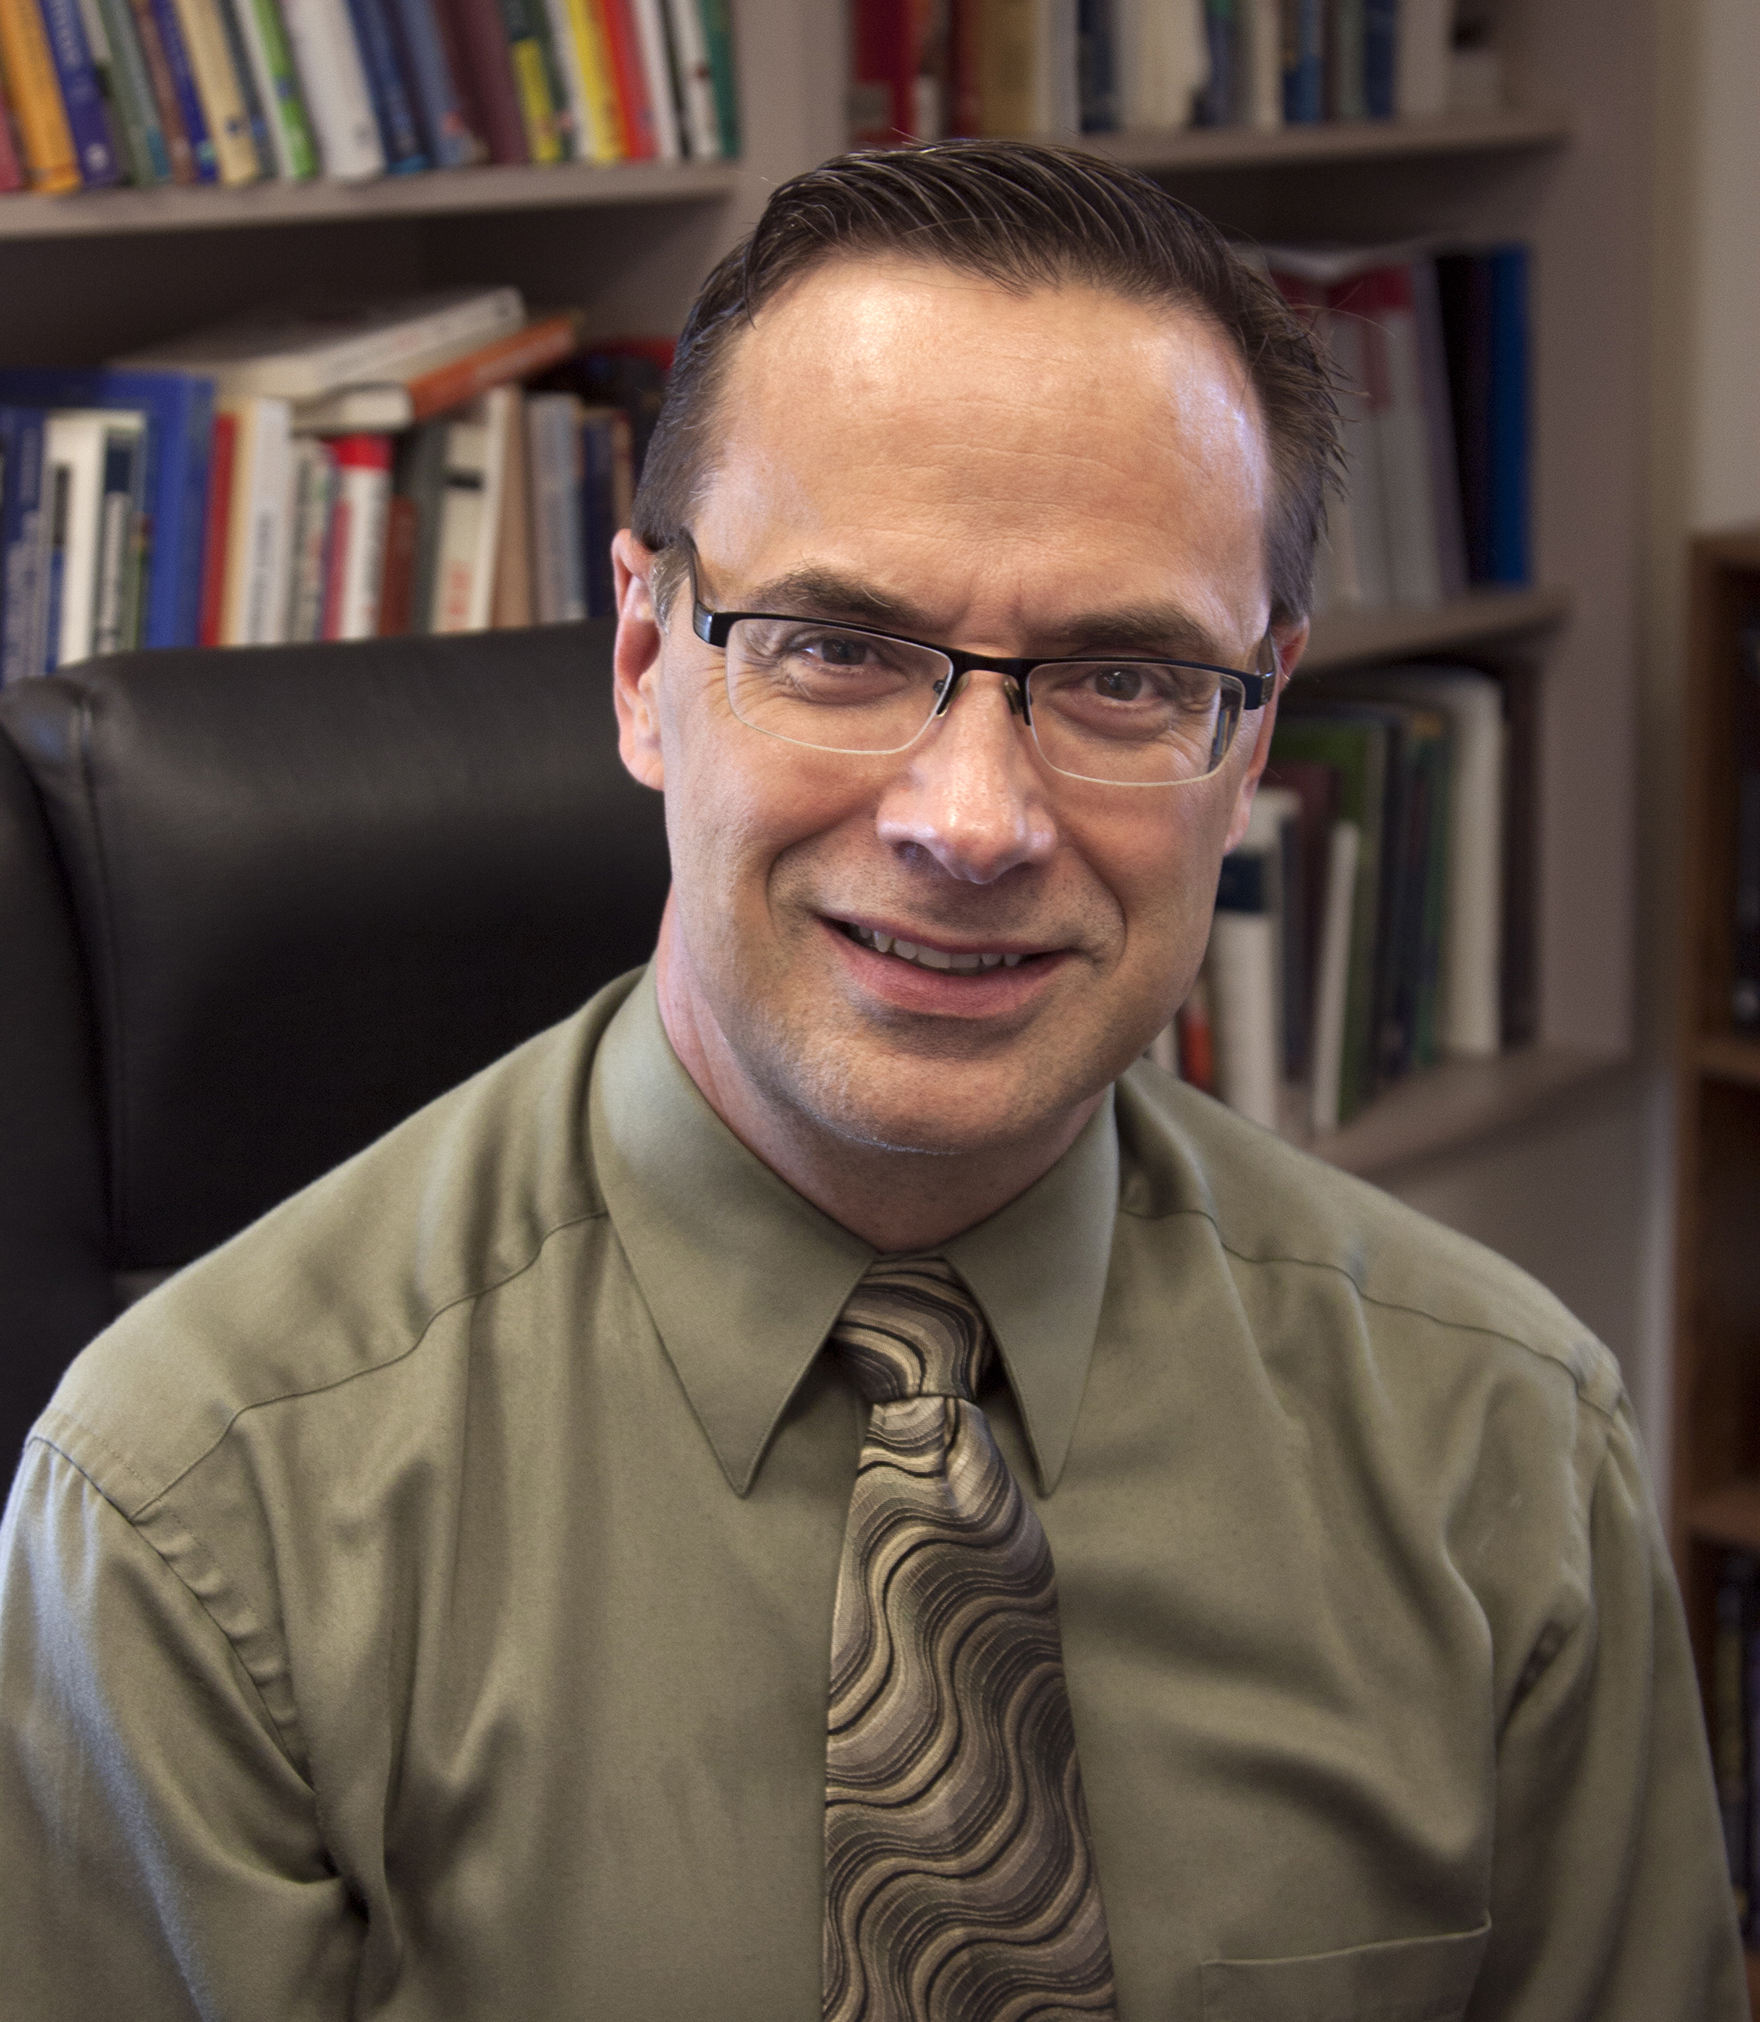 John R. Baldwin, PhD, Professor in the School of Communication, at Illinois State